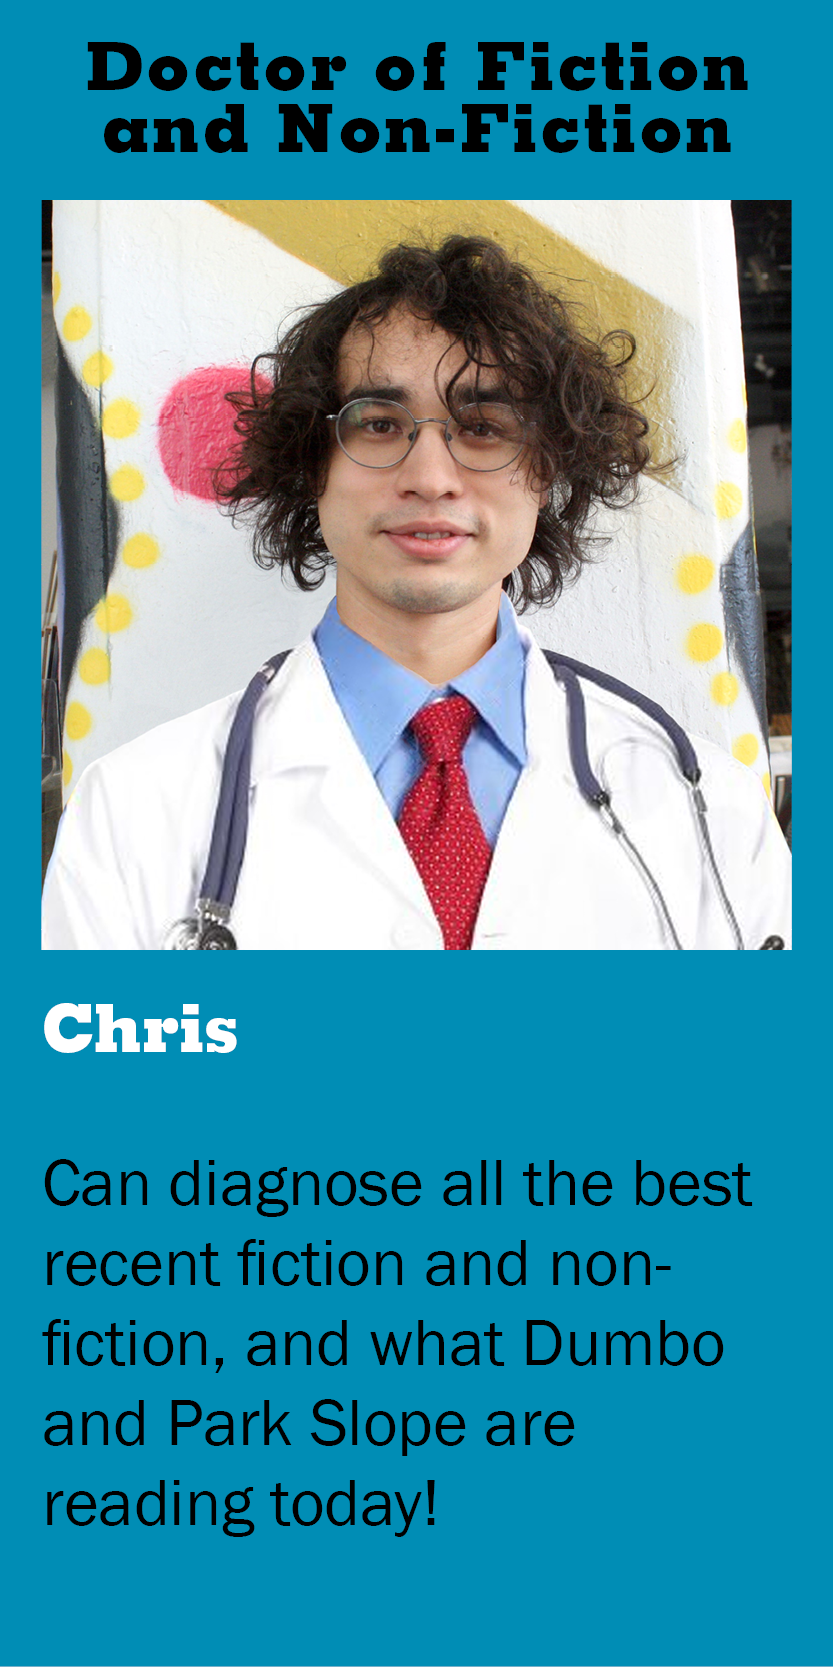 Dr Chris